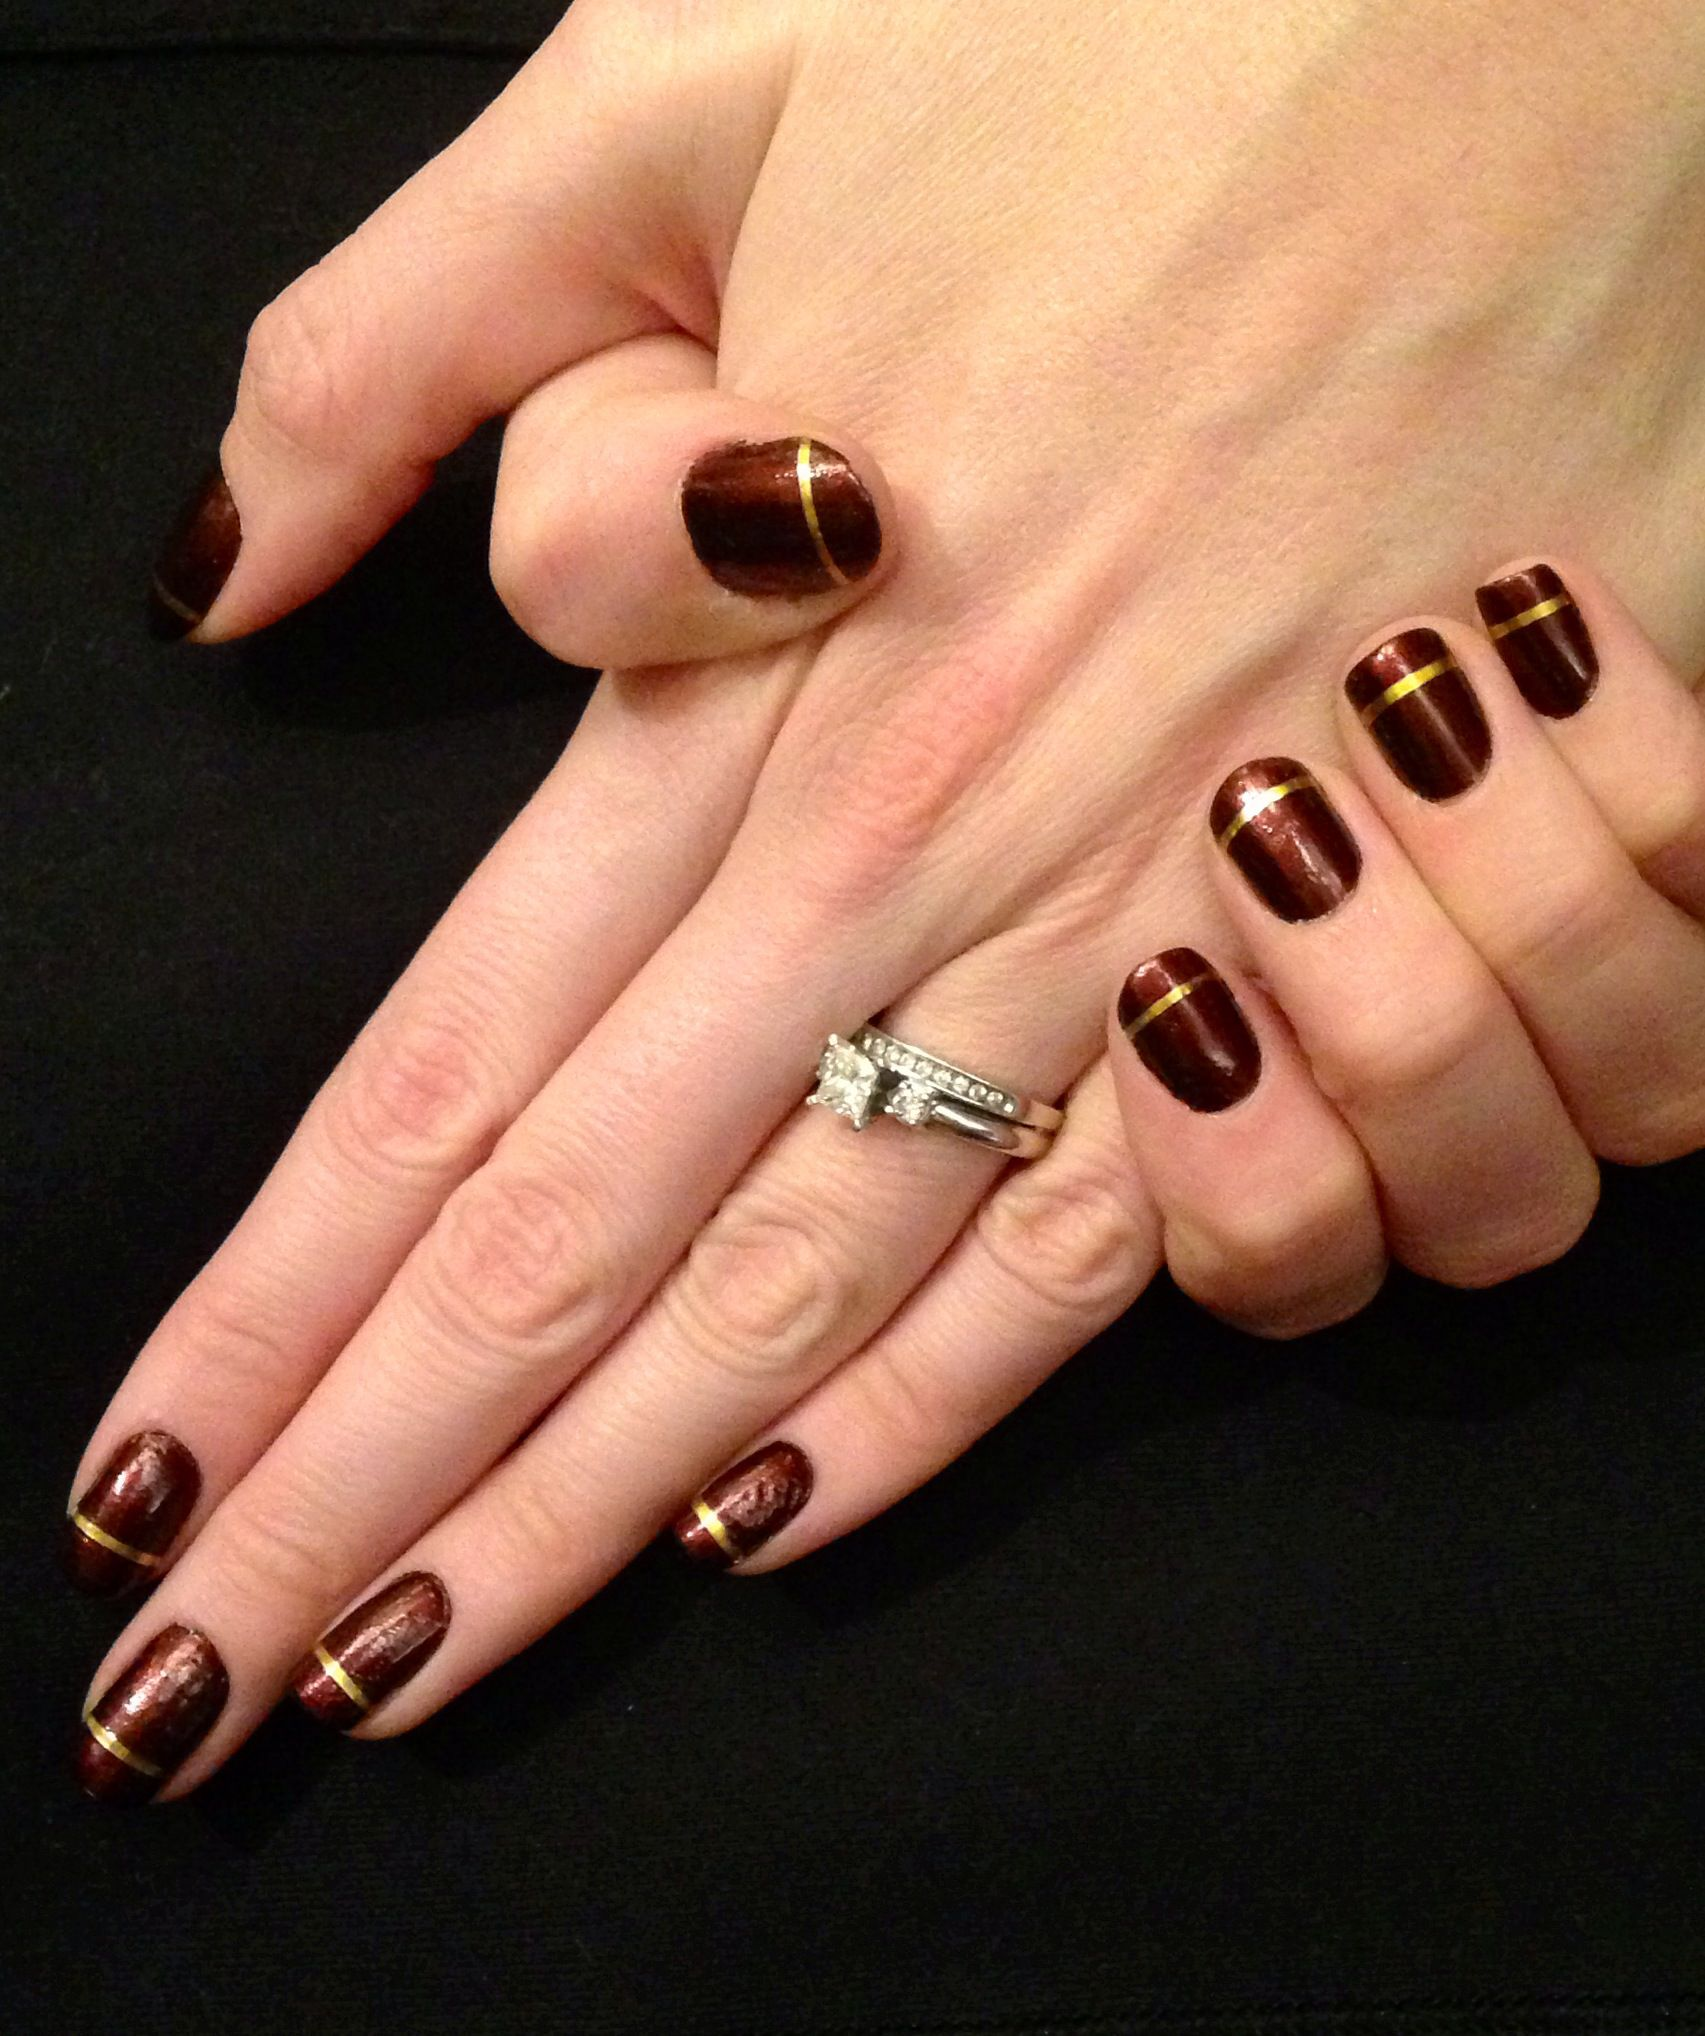 Nails This Week - Chocolate & Gold - Nails For Nickels